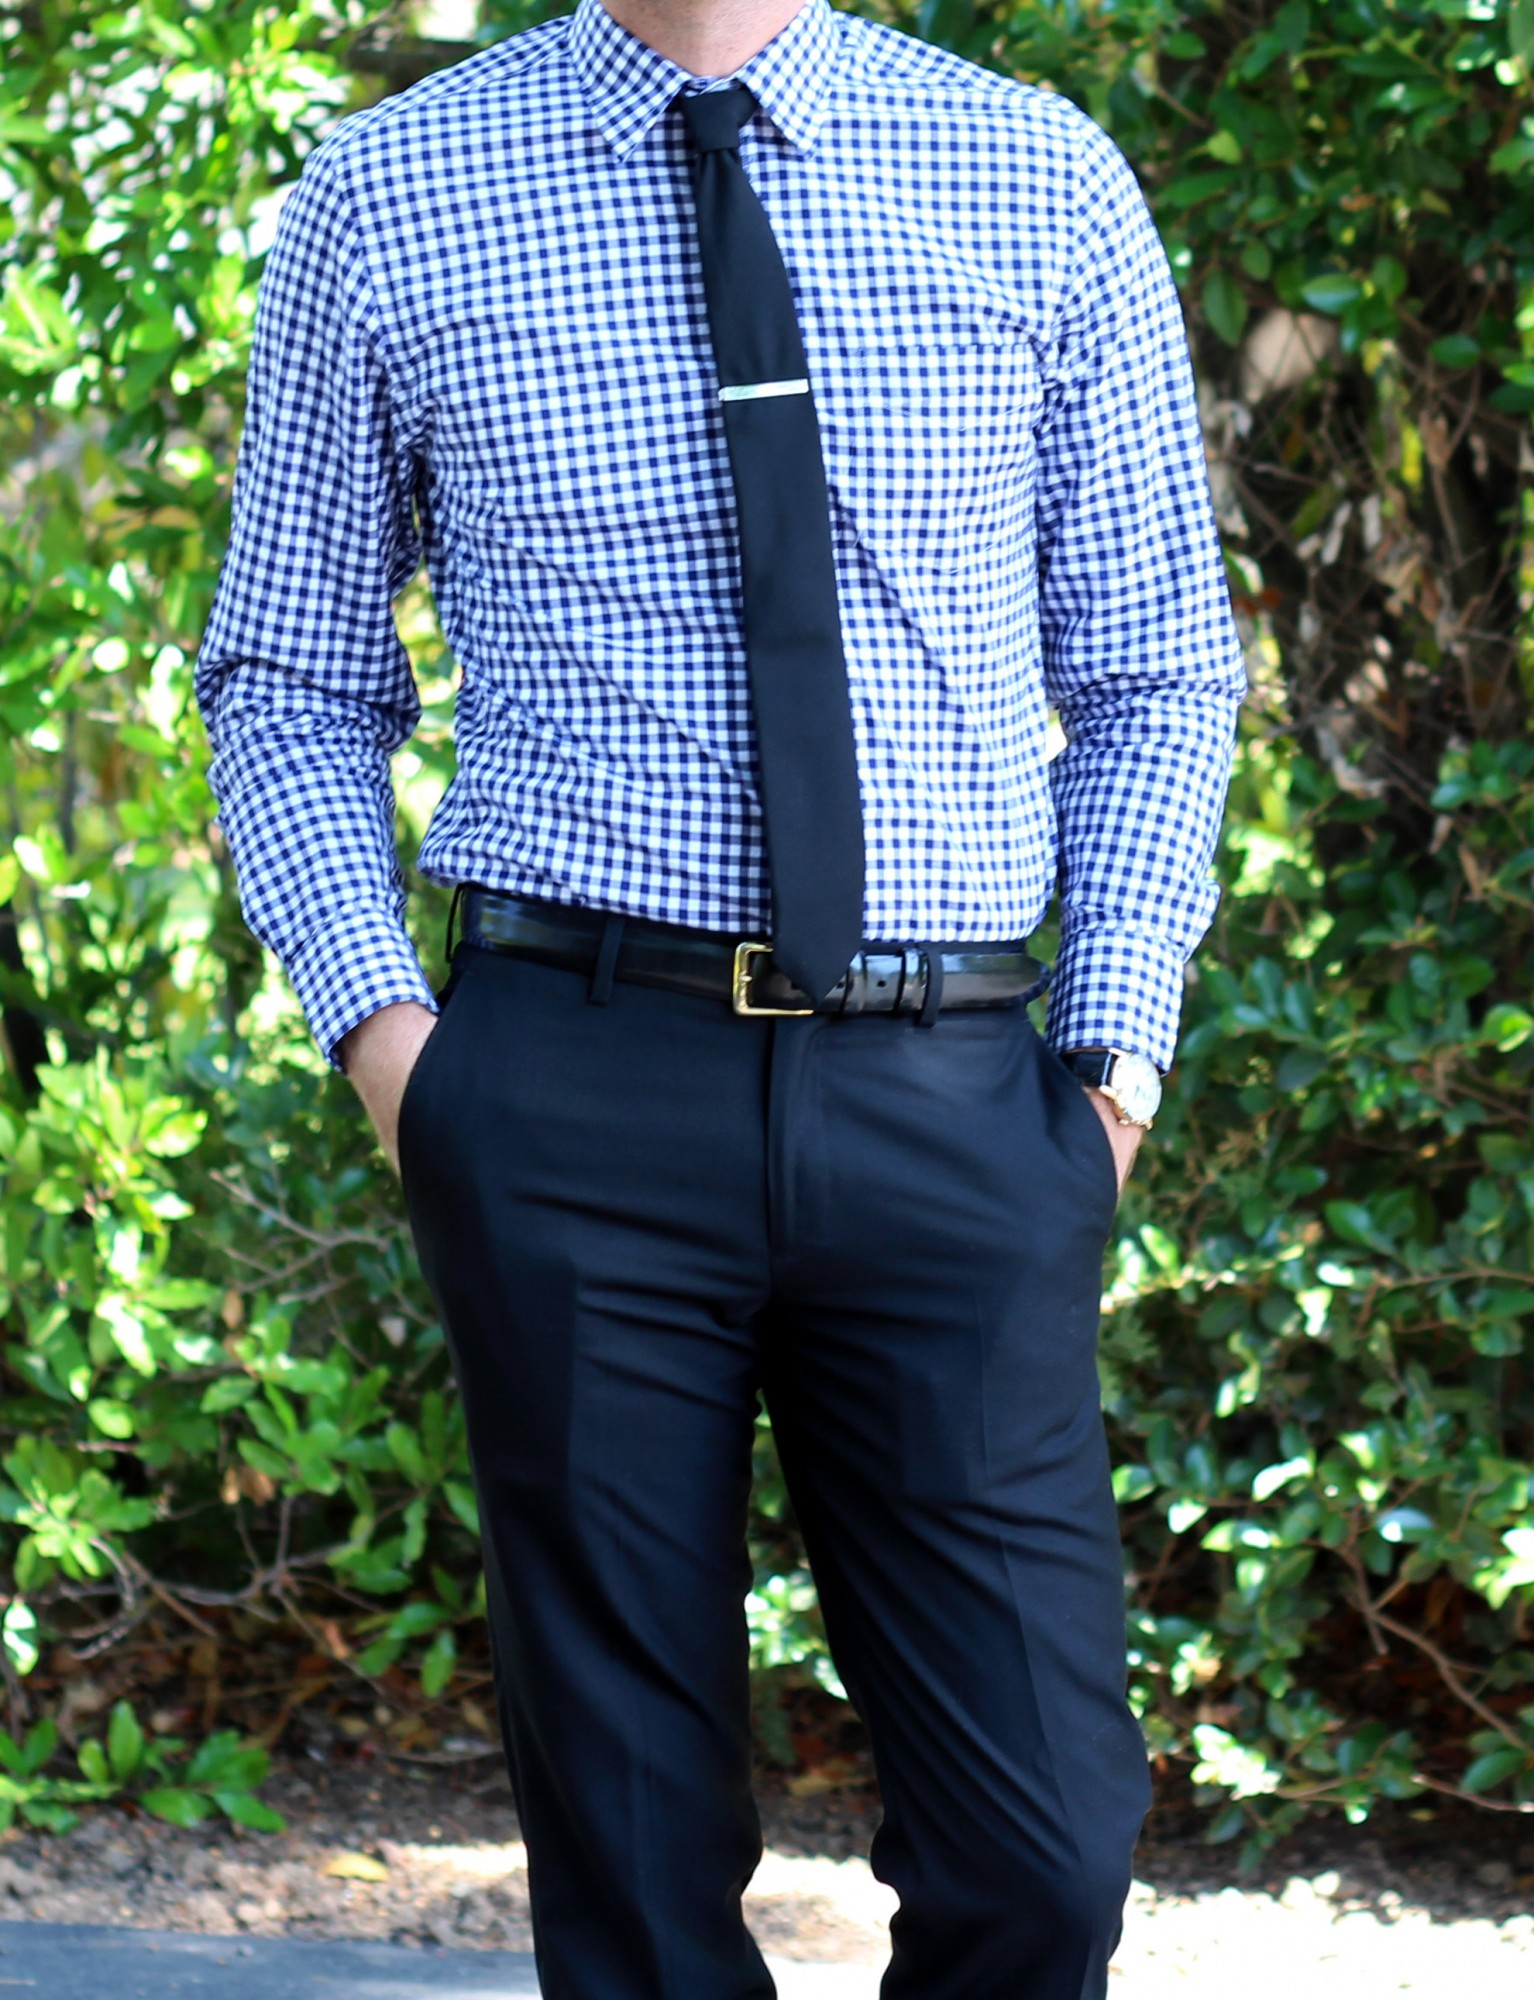 Gingham shirt and Tie 4